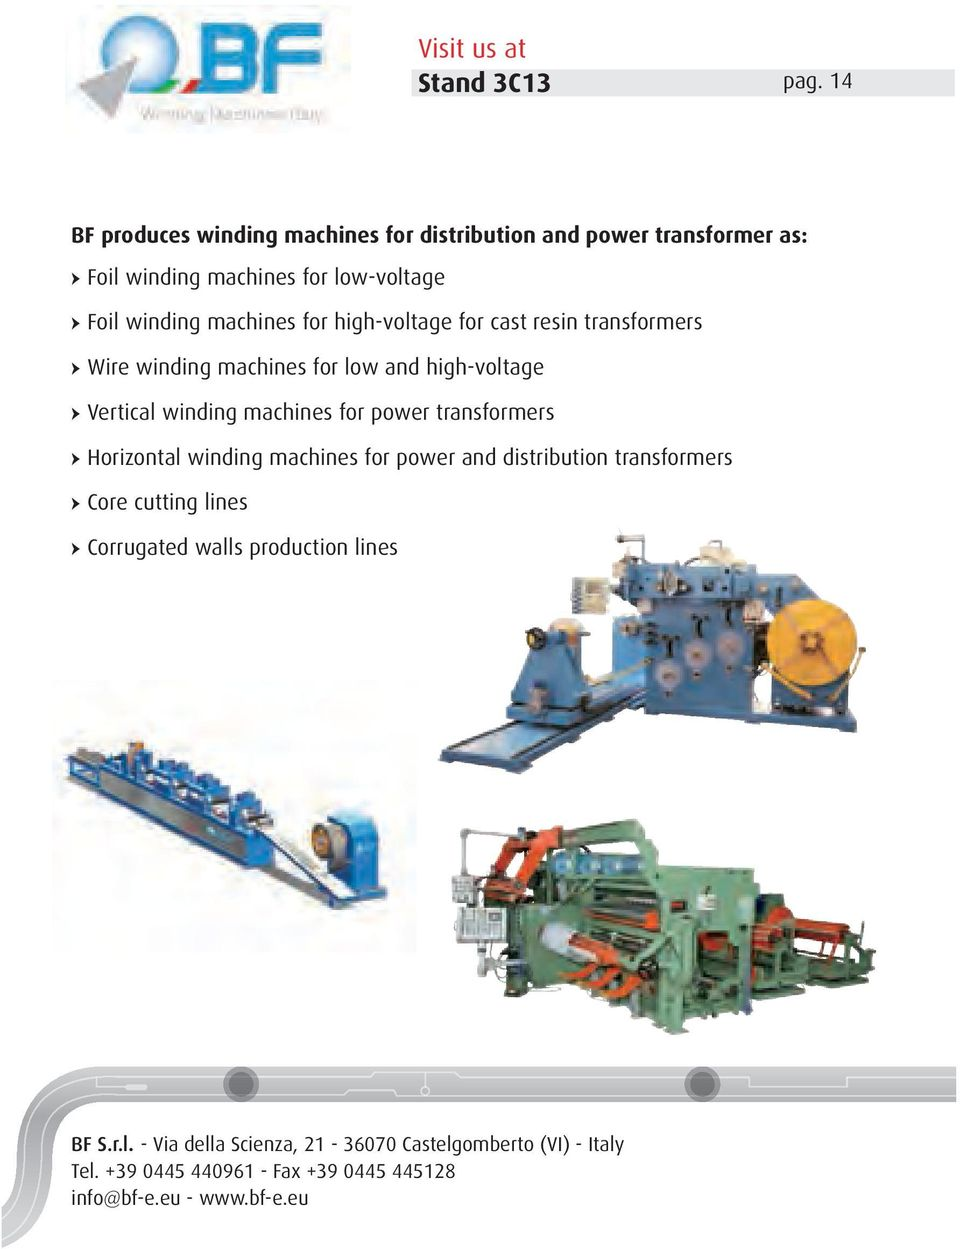 Middle East Electricity Solar Pdf As Bremas Rotary Switch Wiring Diagram Moreover Timer For High Voltage Cast Resin Transformers Wire Winding Machines Low And